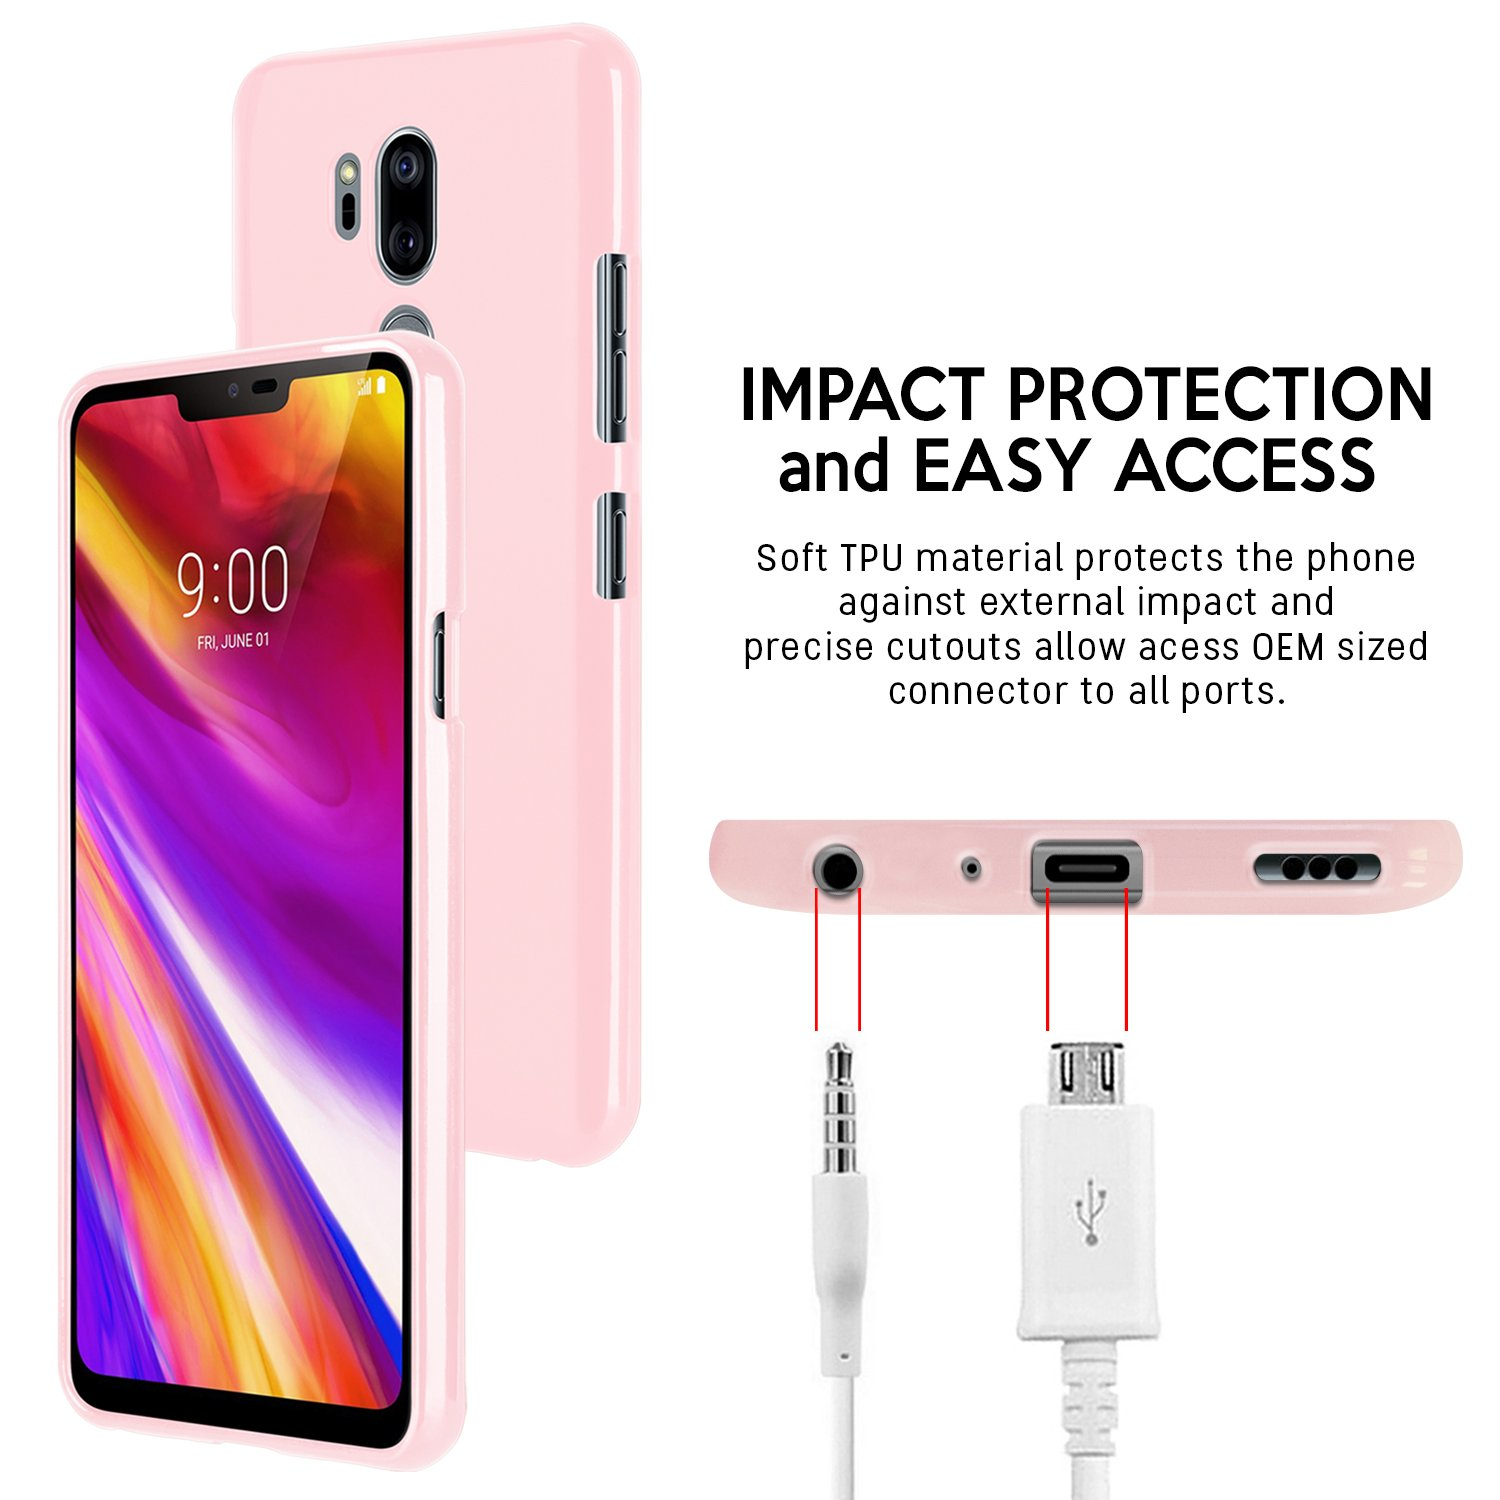 Lg G7 Thinq Case Thin Slim Goospery Flexible Color Iphone 5 Style Lux Jelly Black Pearl Rubber Tpu Lightweight Bumper Cover Impact Resistant For